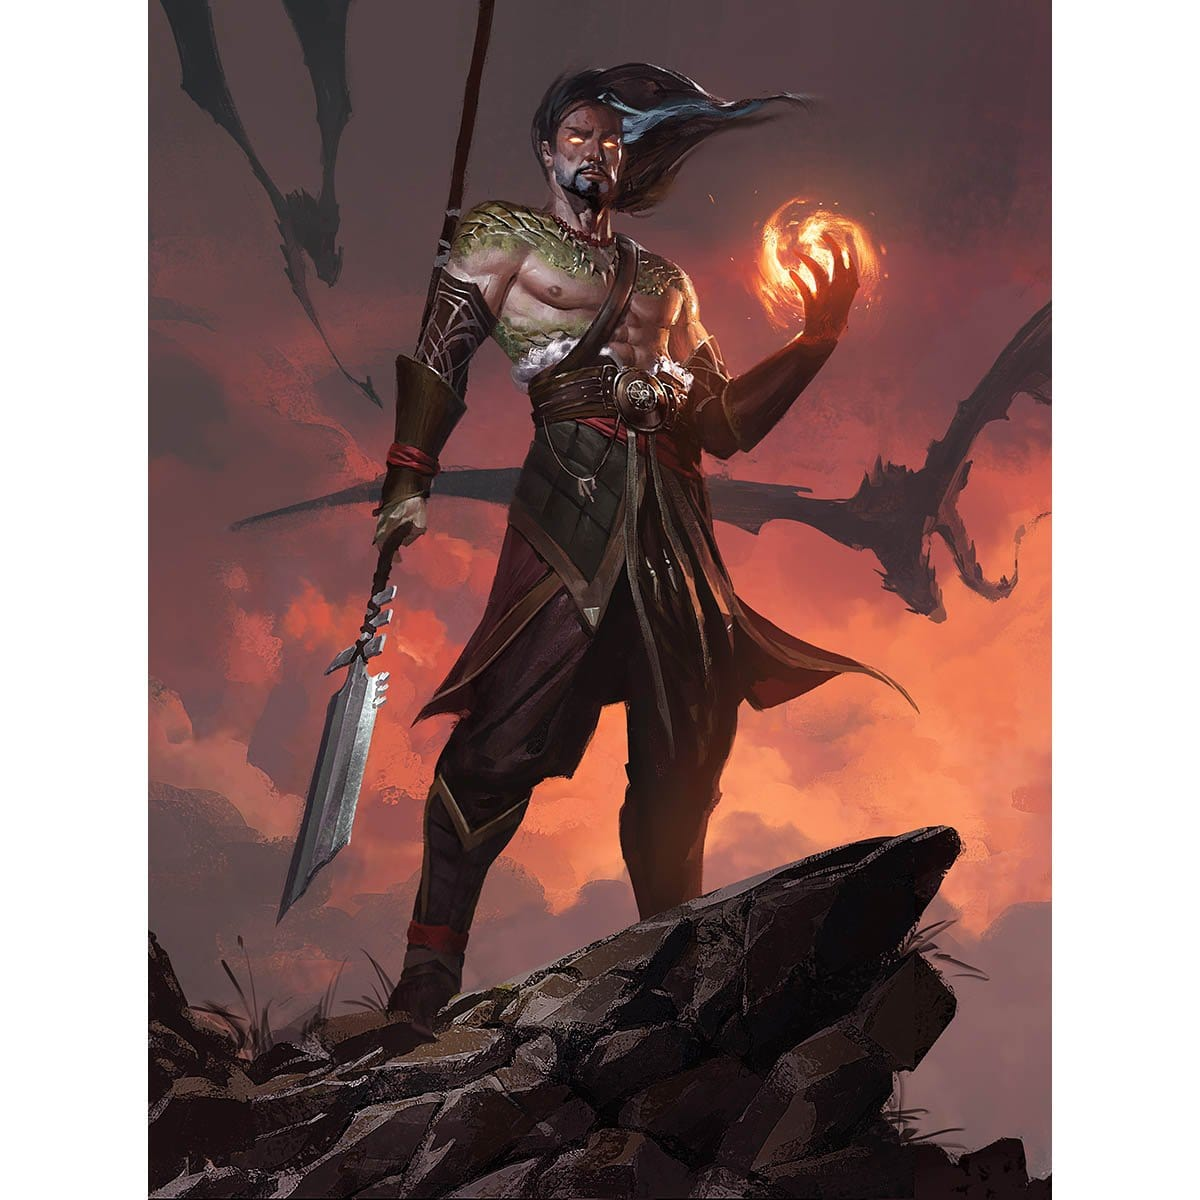 Sarkhan, Fireblood Print - Print - Original Magic Art - Accessories for Magic the Gathering and other card games